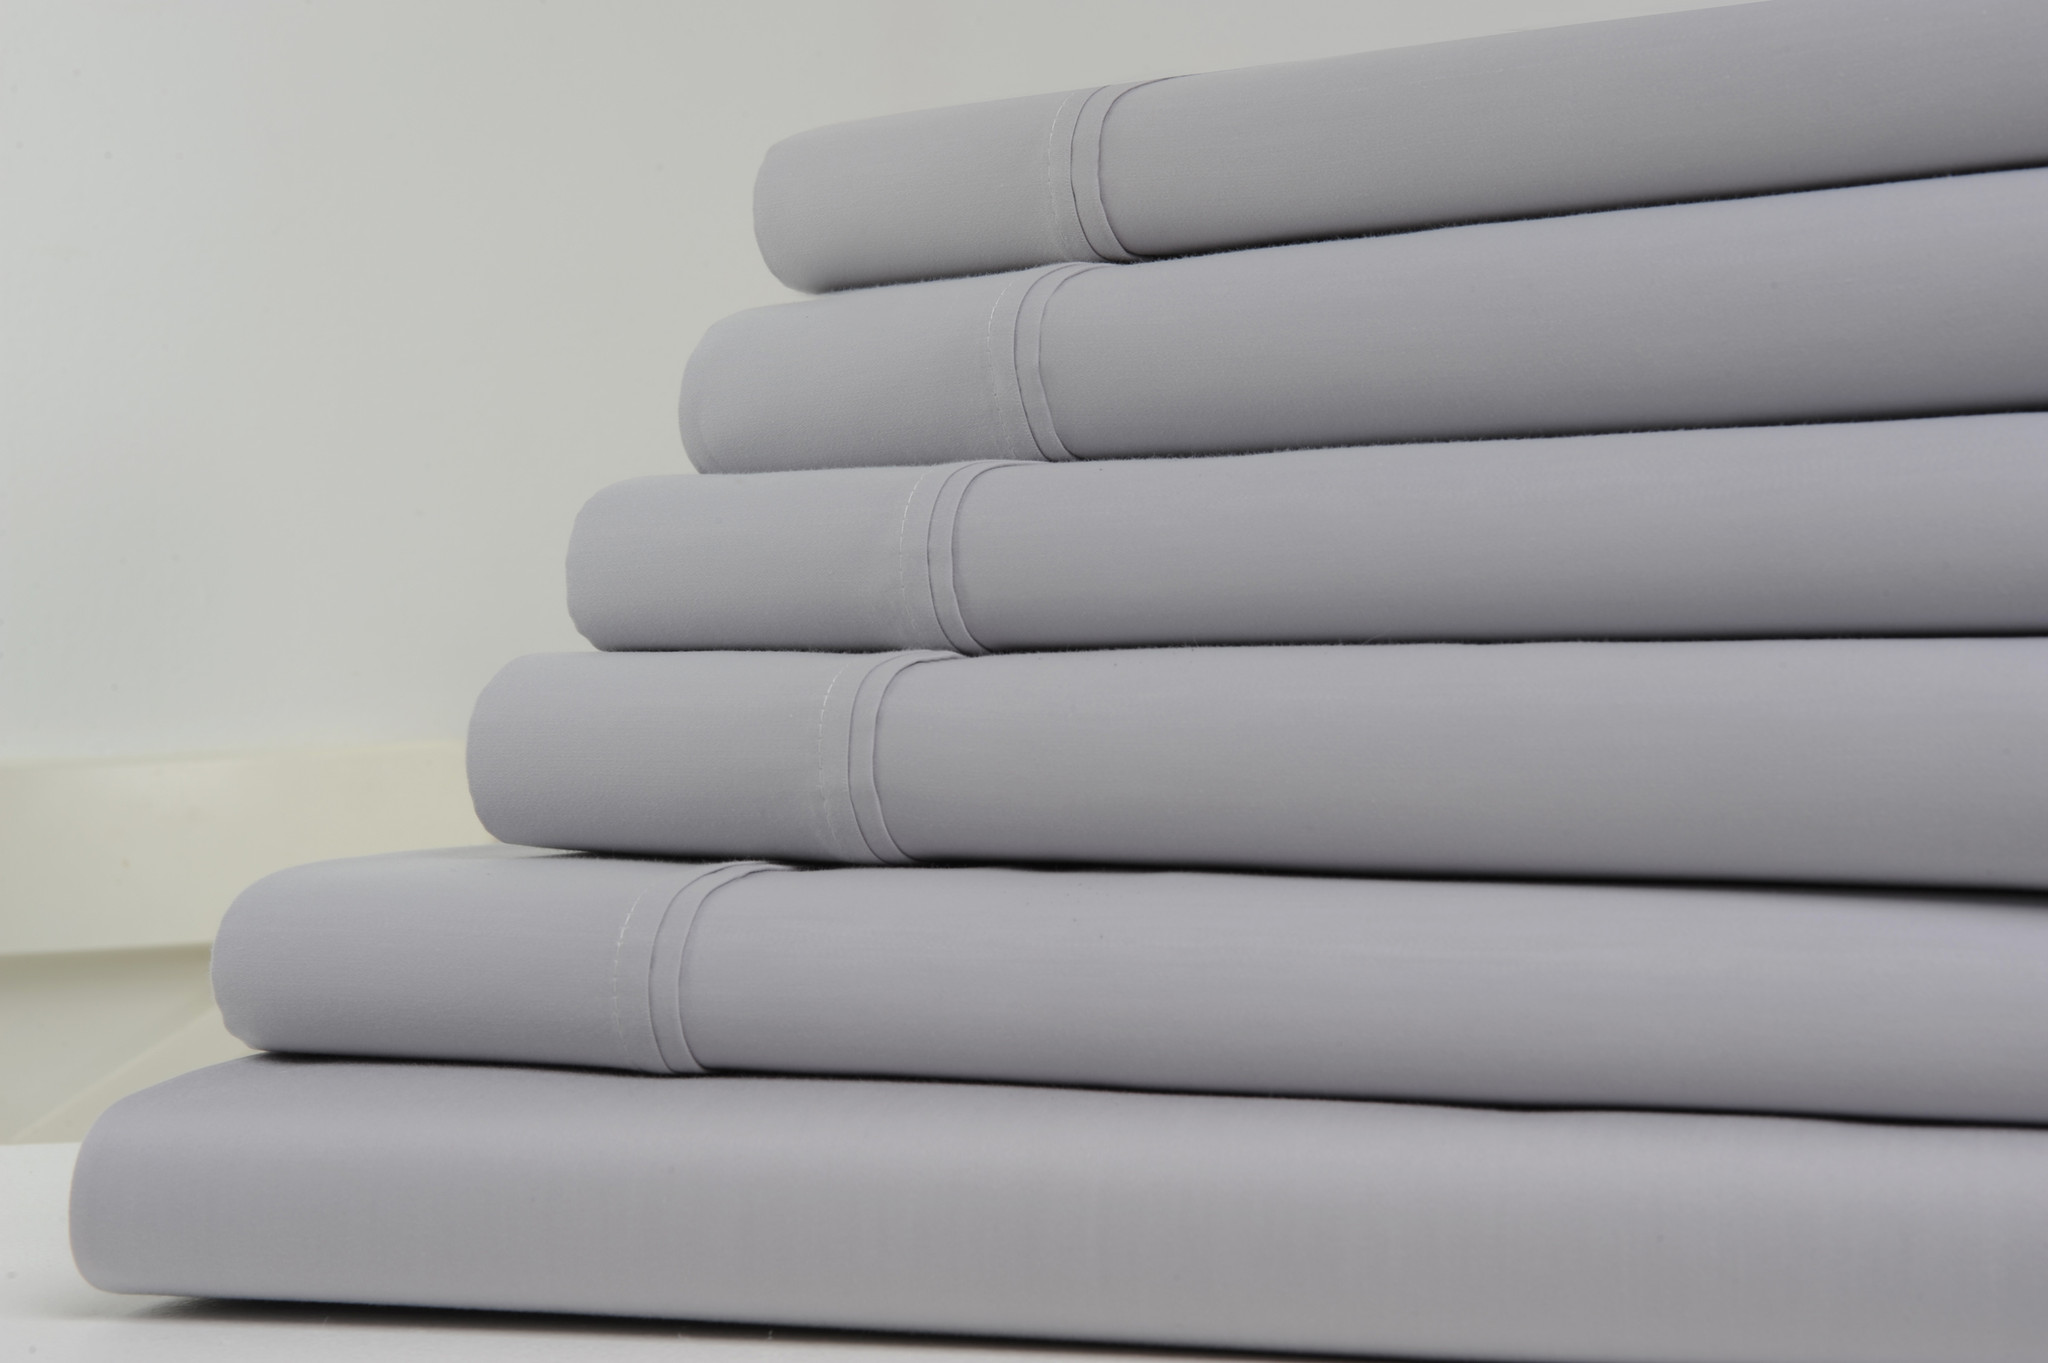 Kathy Ireland Home 1200 Thread Count Cotton Rich Bed Sheets 6 Piece Set   6  Colors   Full / Gray   Walmart.com